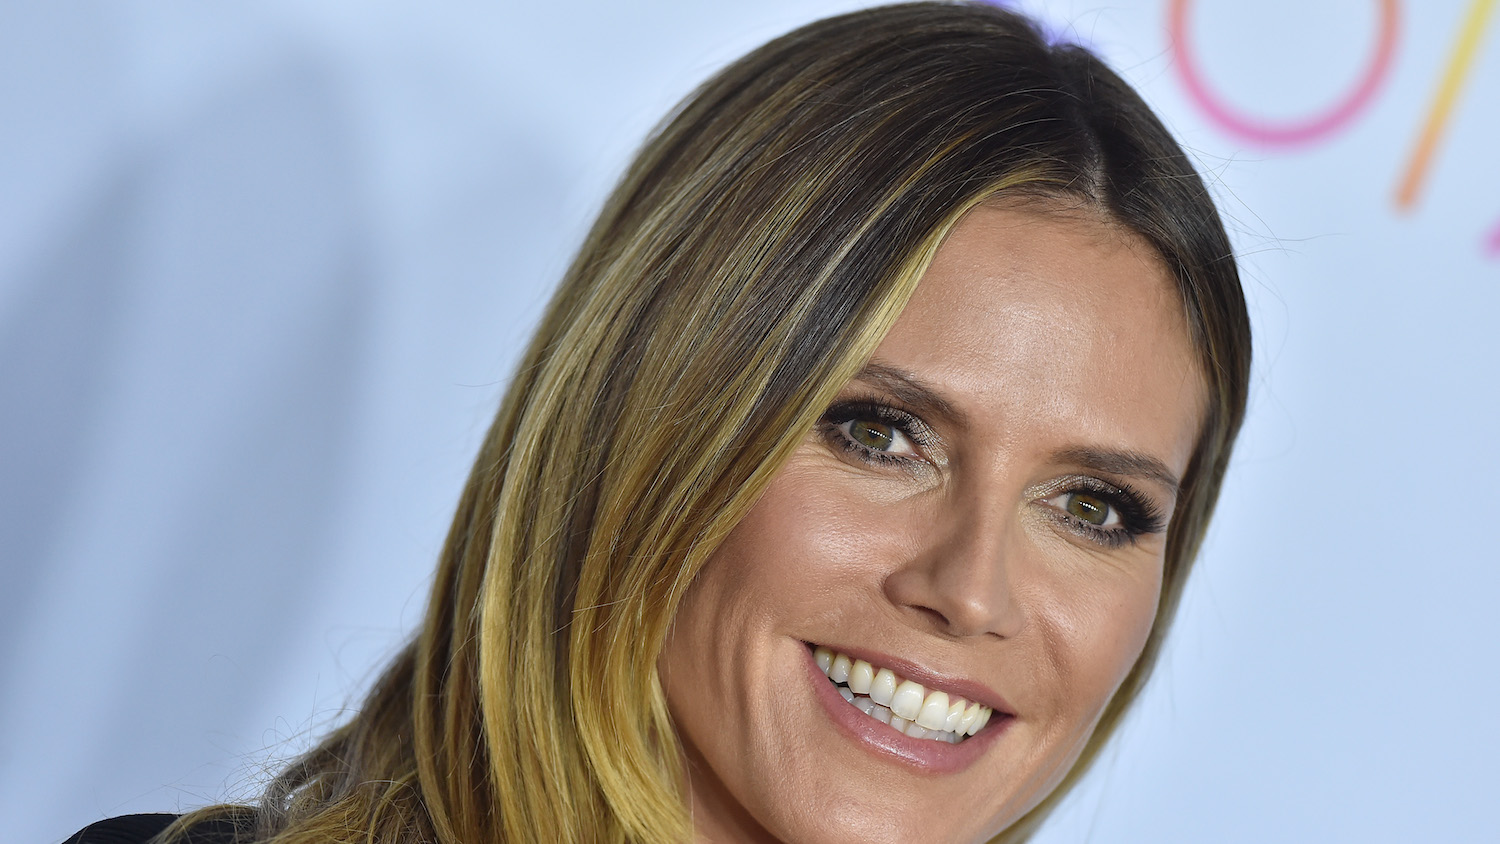 Heidi Klum Designed a Fashion Line for Supermarket Chain Lidl